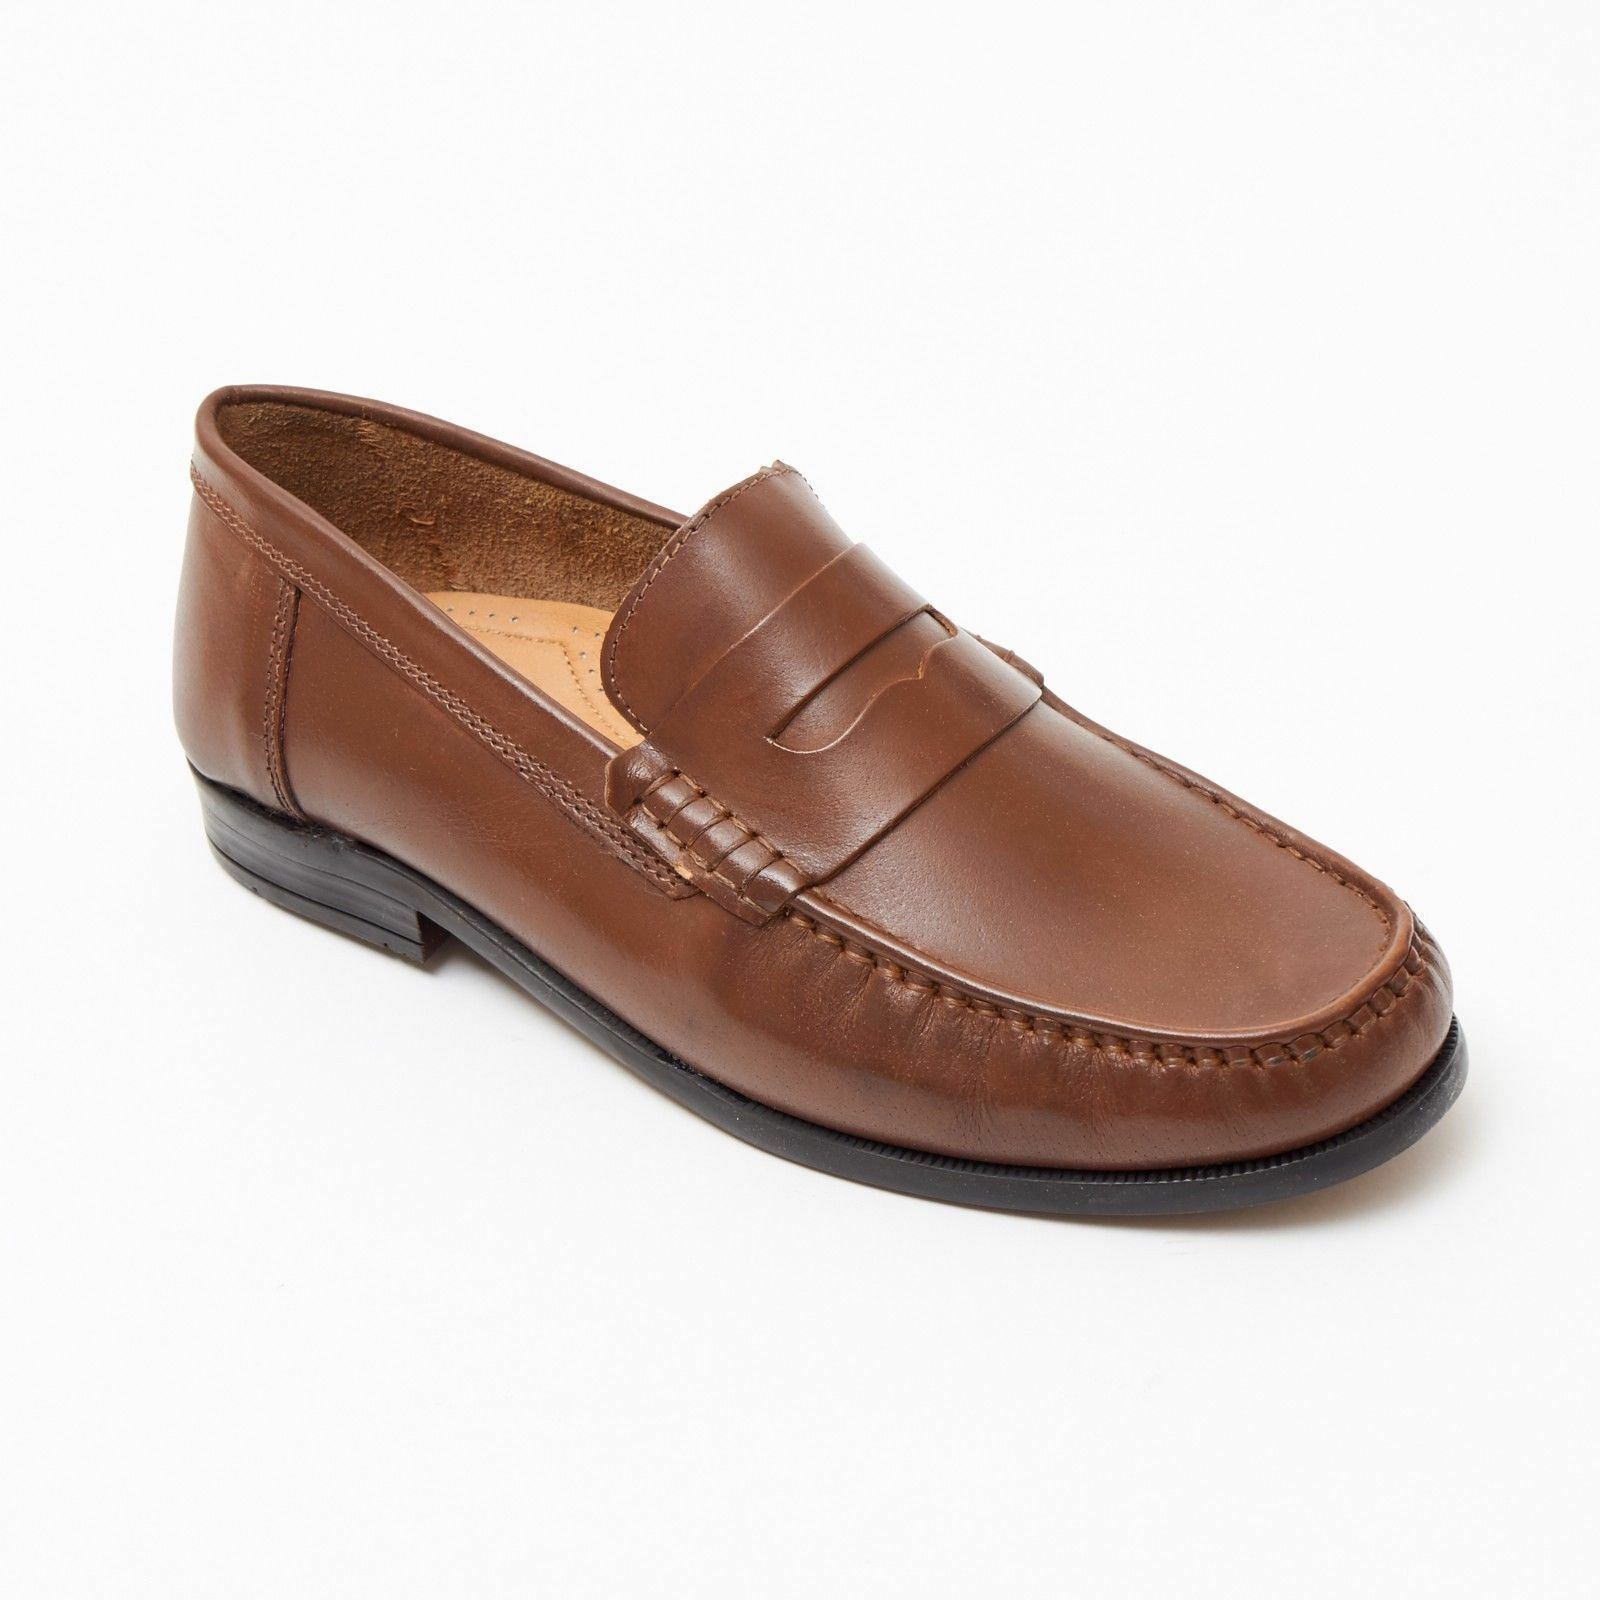 Lucini Formal Men Tan Brown Leather Moccasin Heels shoes Slip On Casual Loafer